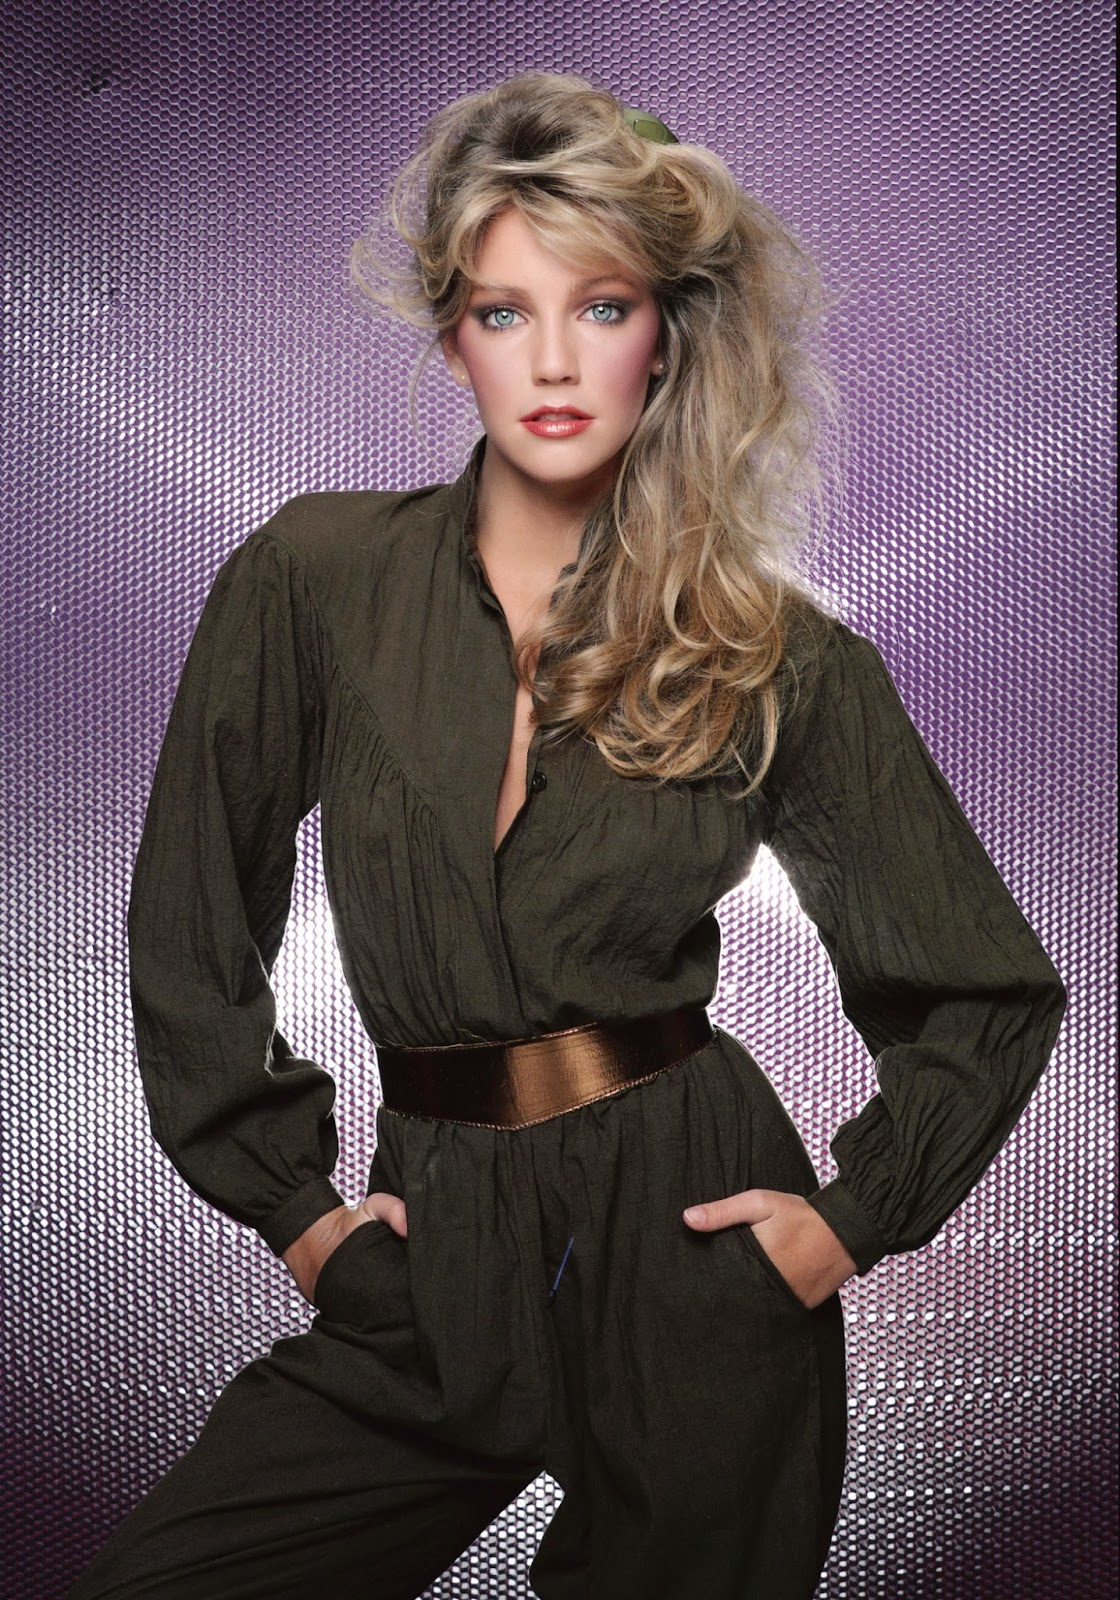 The Cathode Ray Mission: Femme Fatale Friday: Heather Locklear